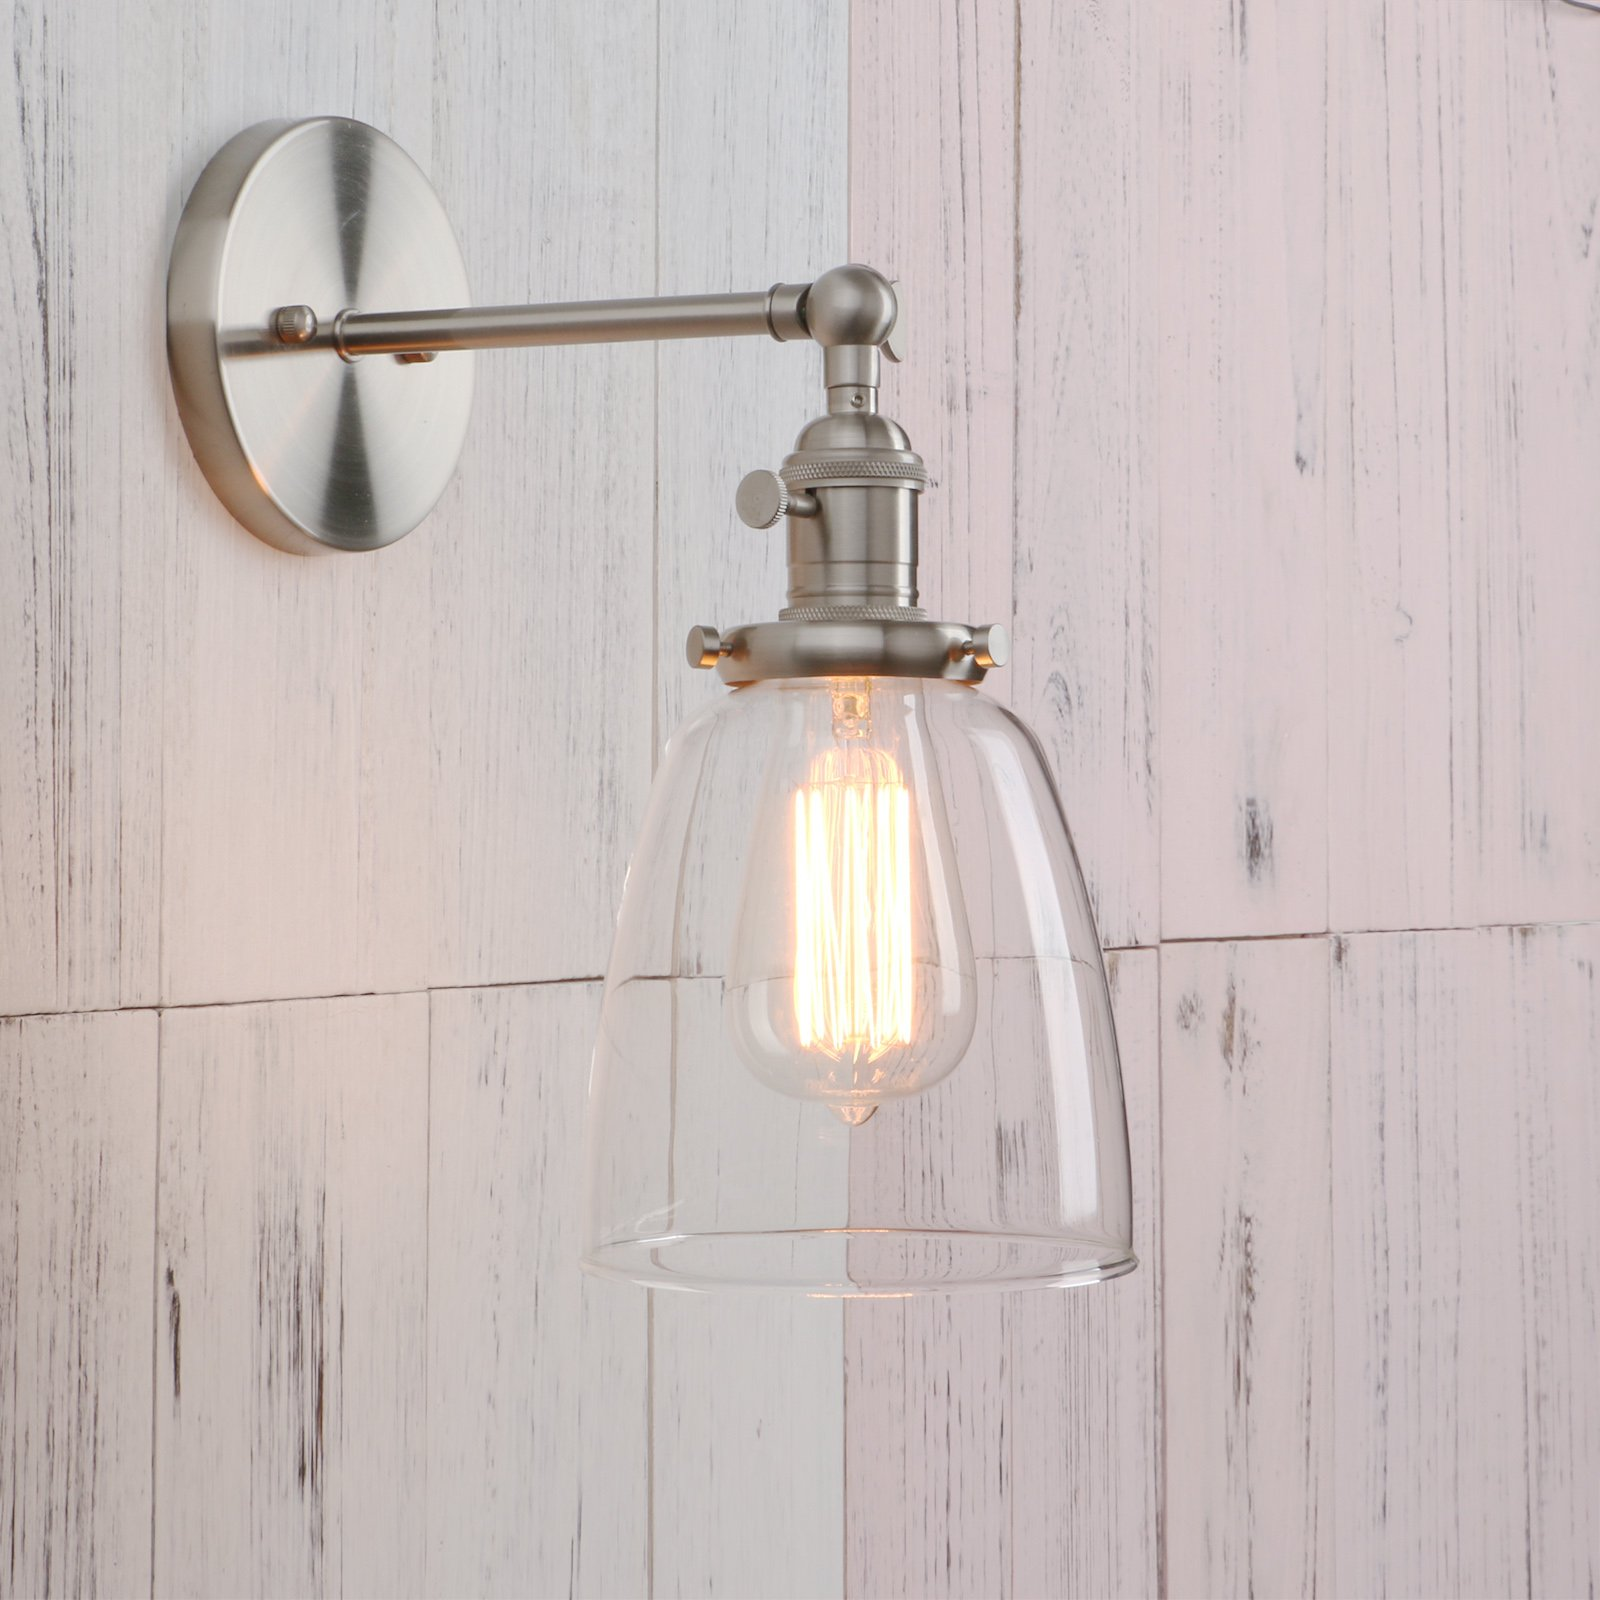 Permo Industrial Vintage Single Sconce With Oval Cone Clear Glass Shade 1-light Wall Sconce Wall Lamp (Brushed) by Permo (Image #2)